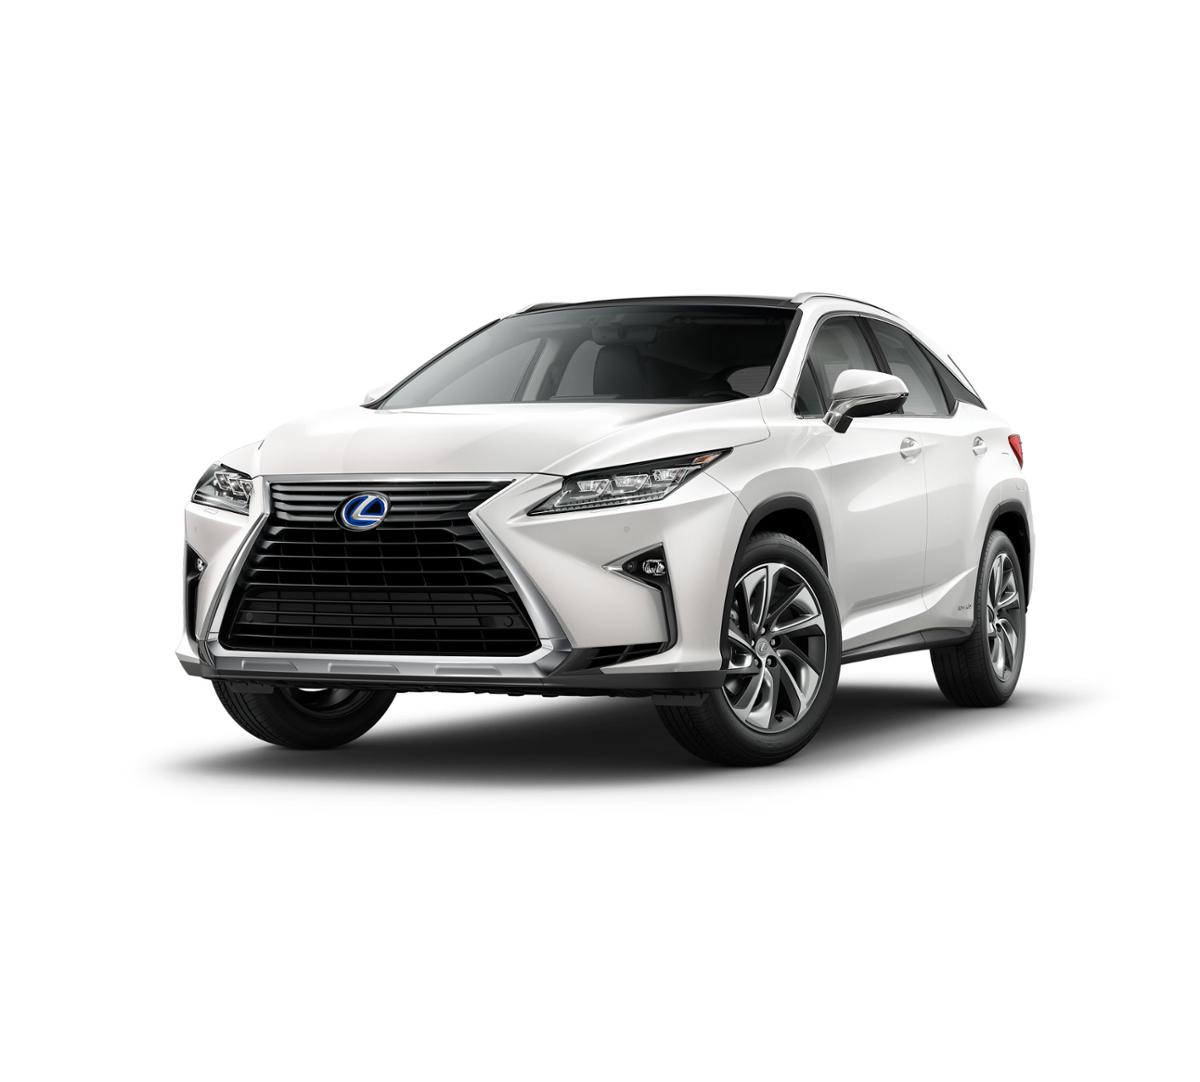 2018 Lexus RX 450h Vehicle Photo in Merriam, KS 66203